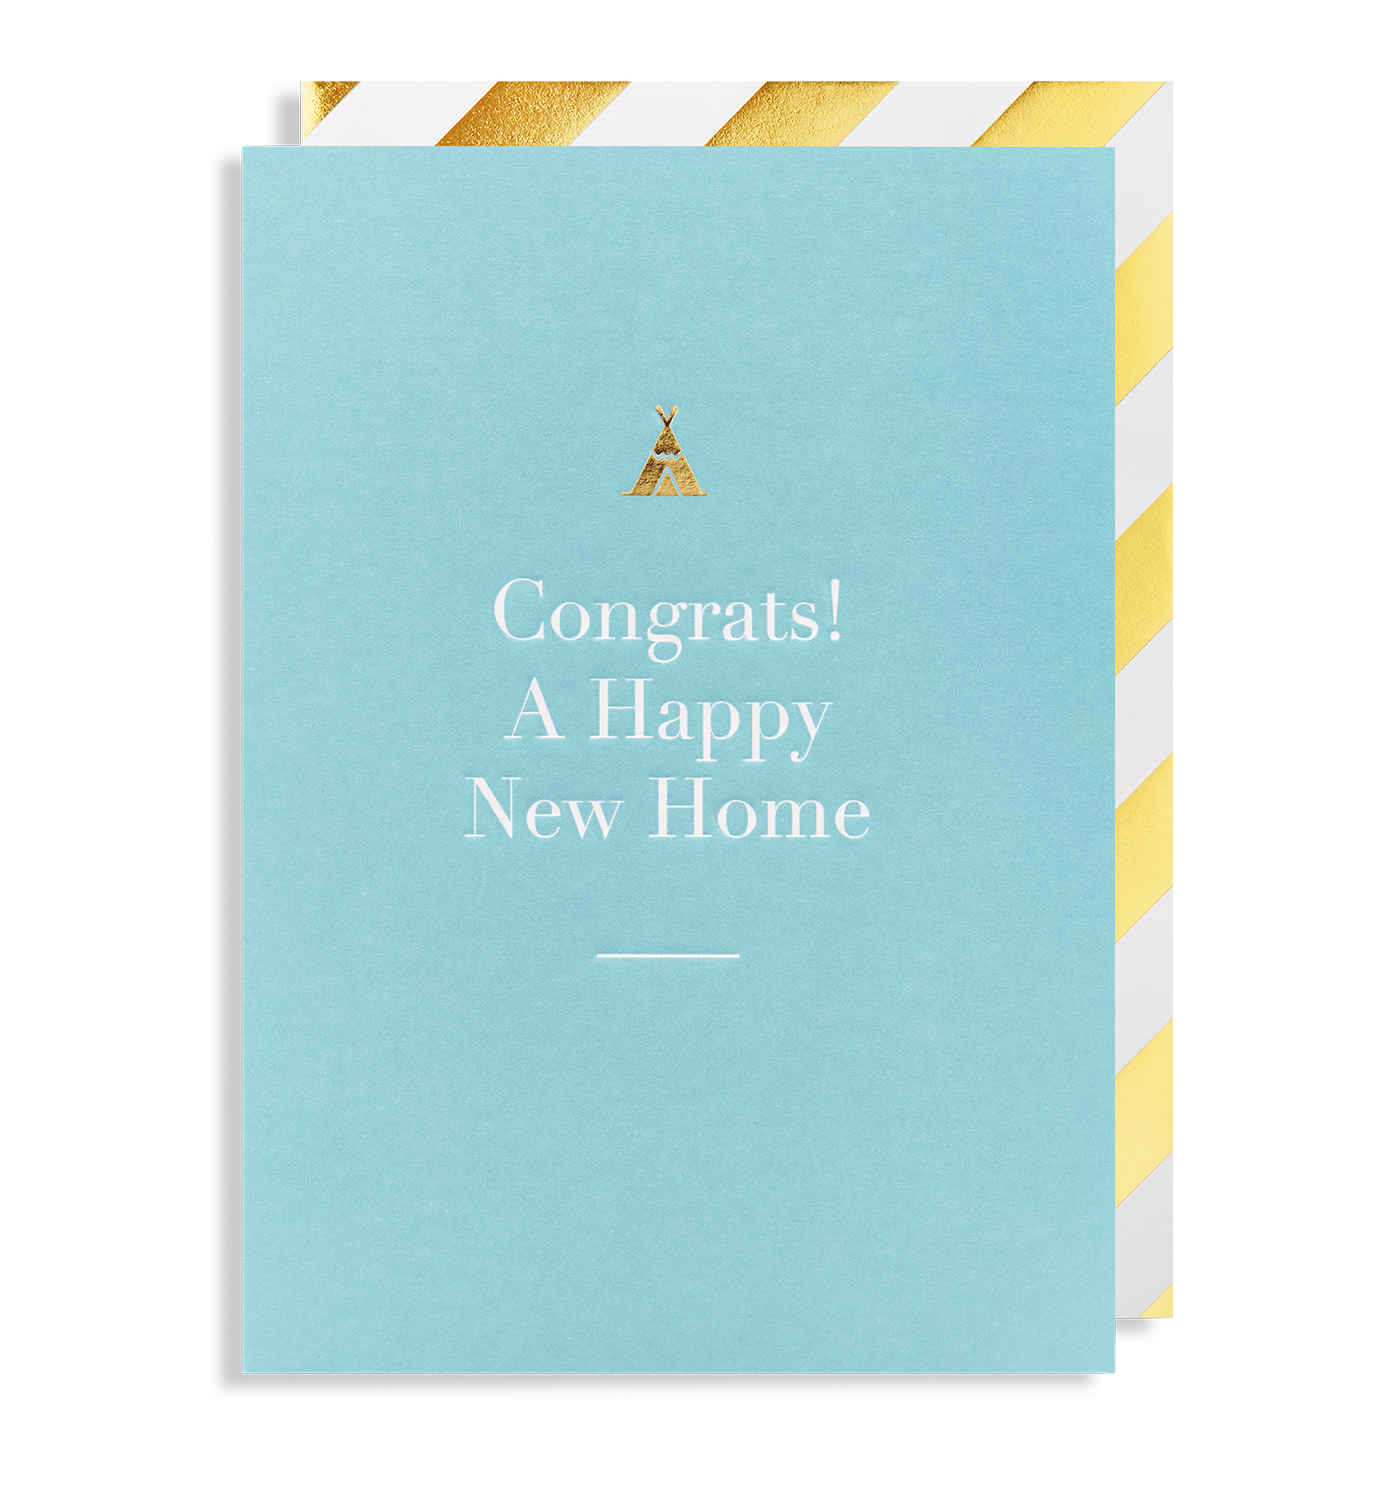 Congrats a happy new home greeting card by charm lagom design congrats a happy new home greeting card lagom design m4hsunfo